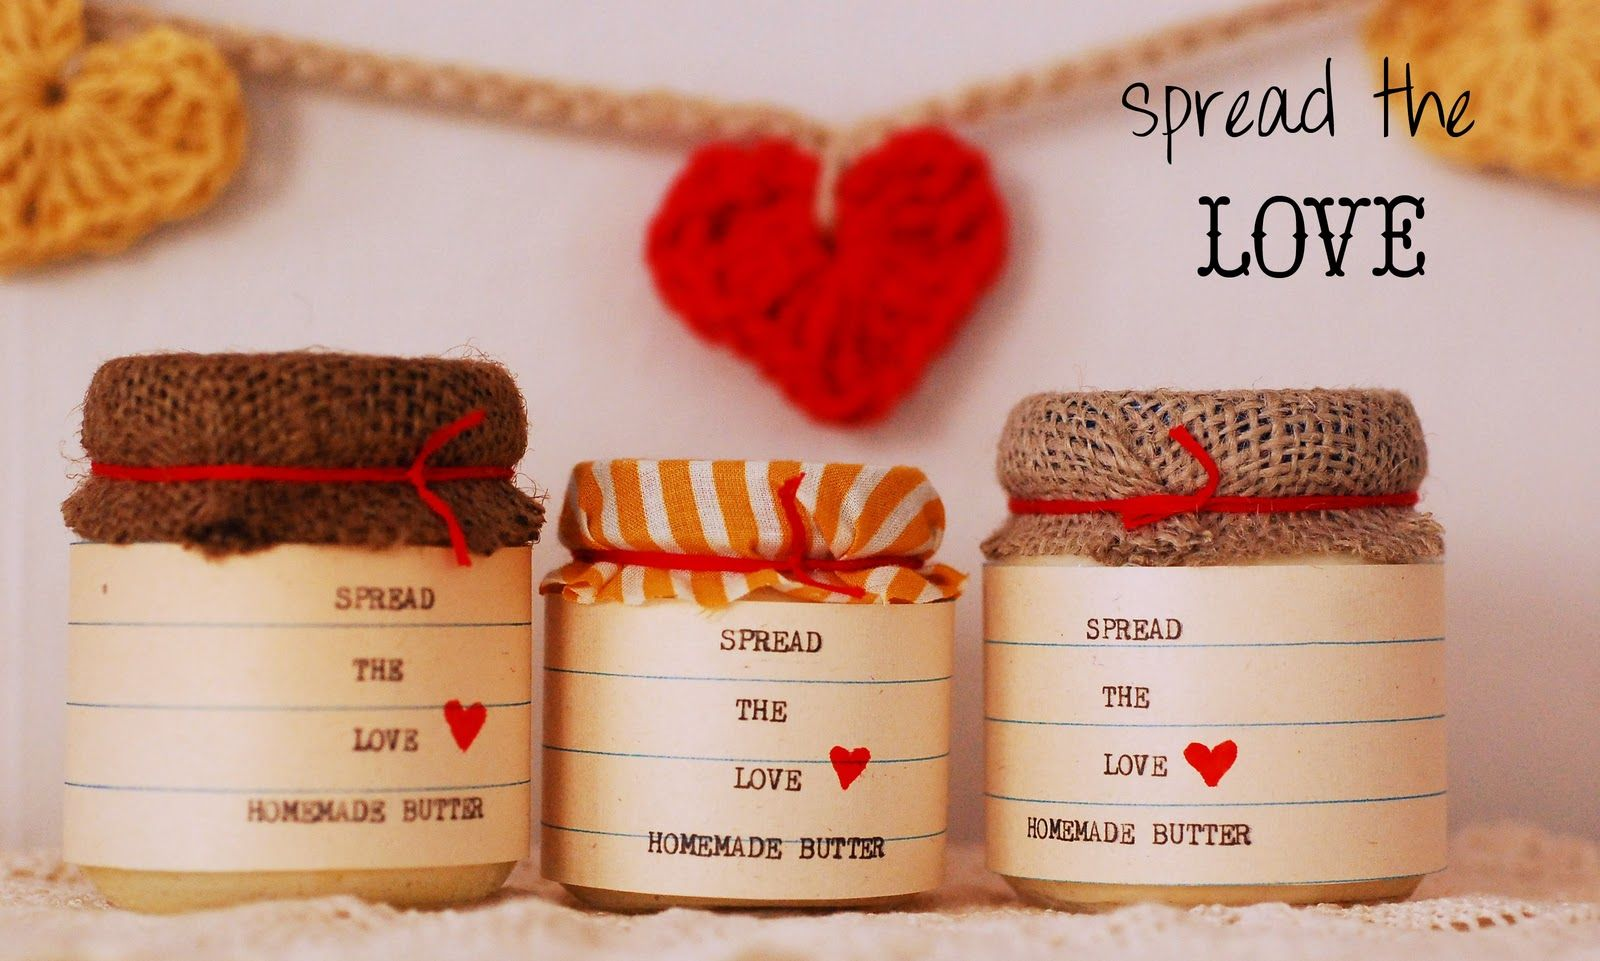 Maize Hutton: Let's Make Butter and SPREAD THE LOVE! Now with printable pdf label!